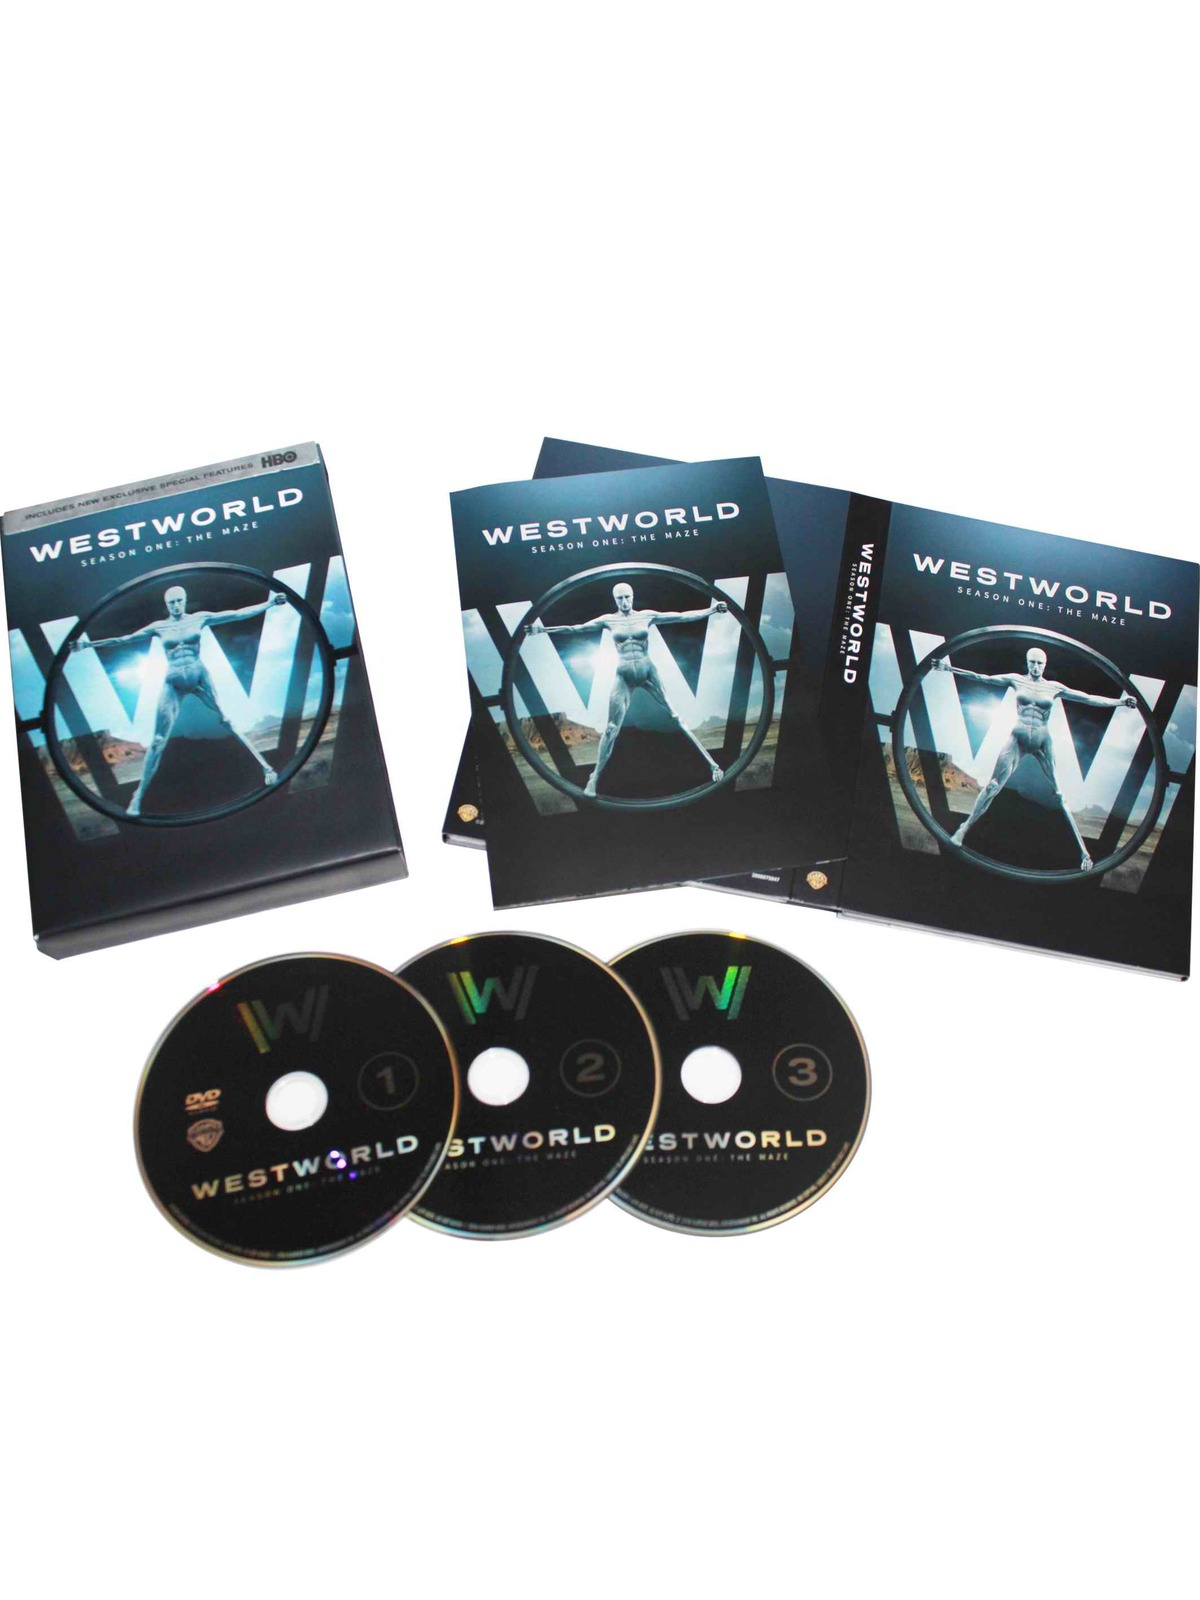 New Westworld The Complete Frsit Season 1 (DVD, 2016,4-Disc Set) Free Shipping